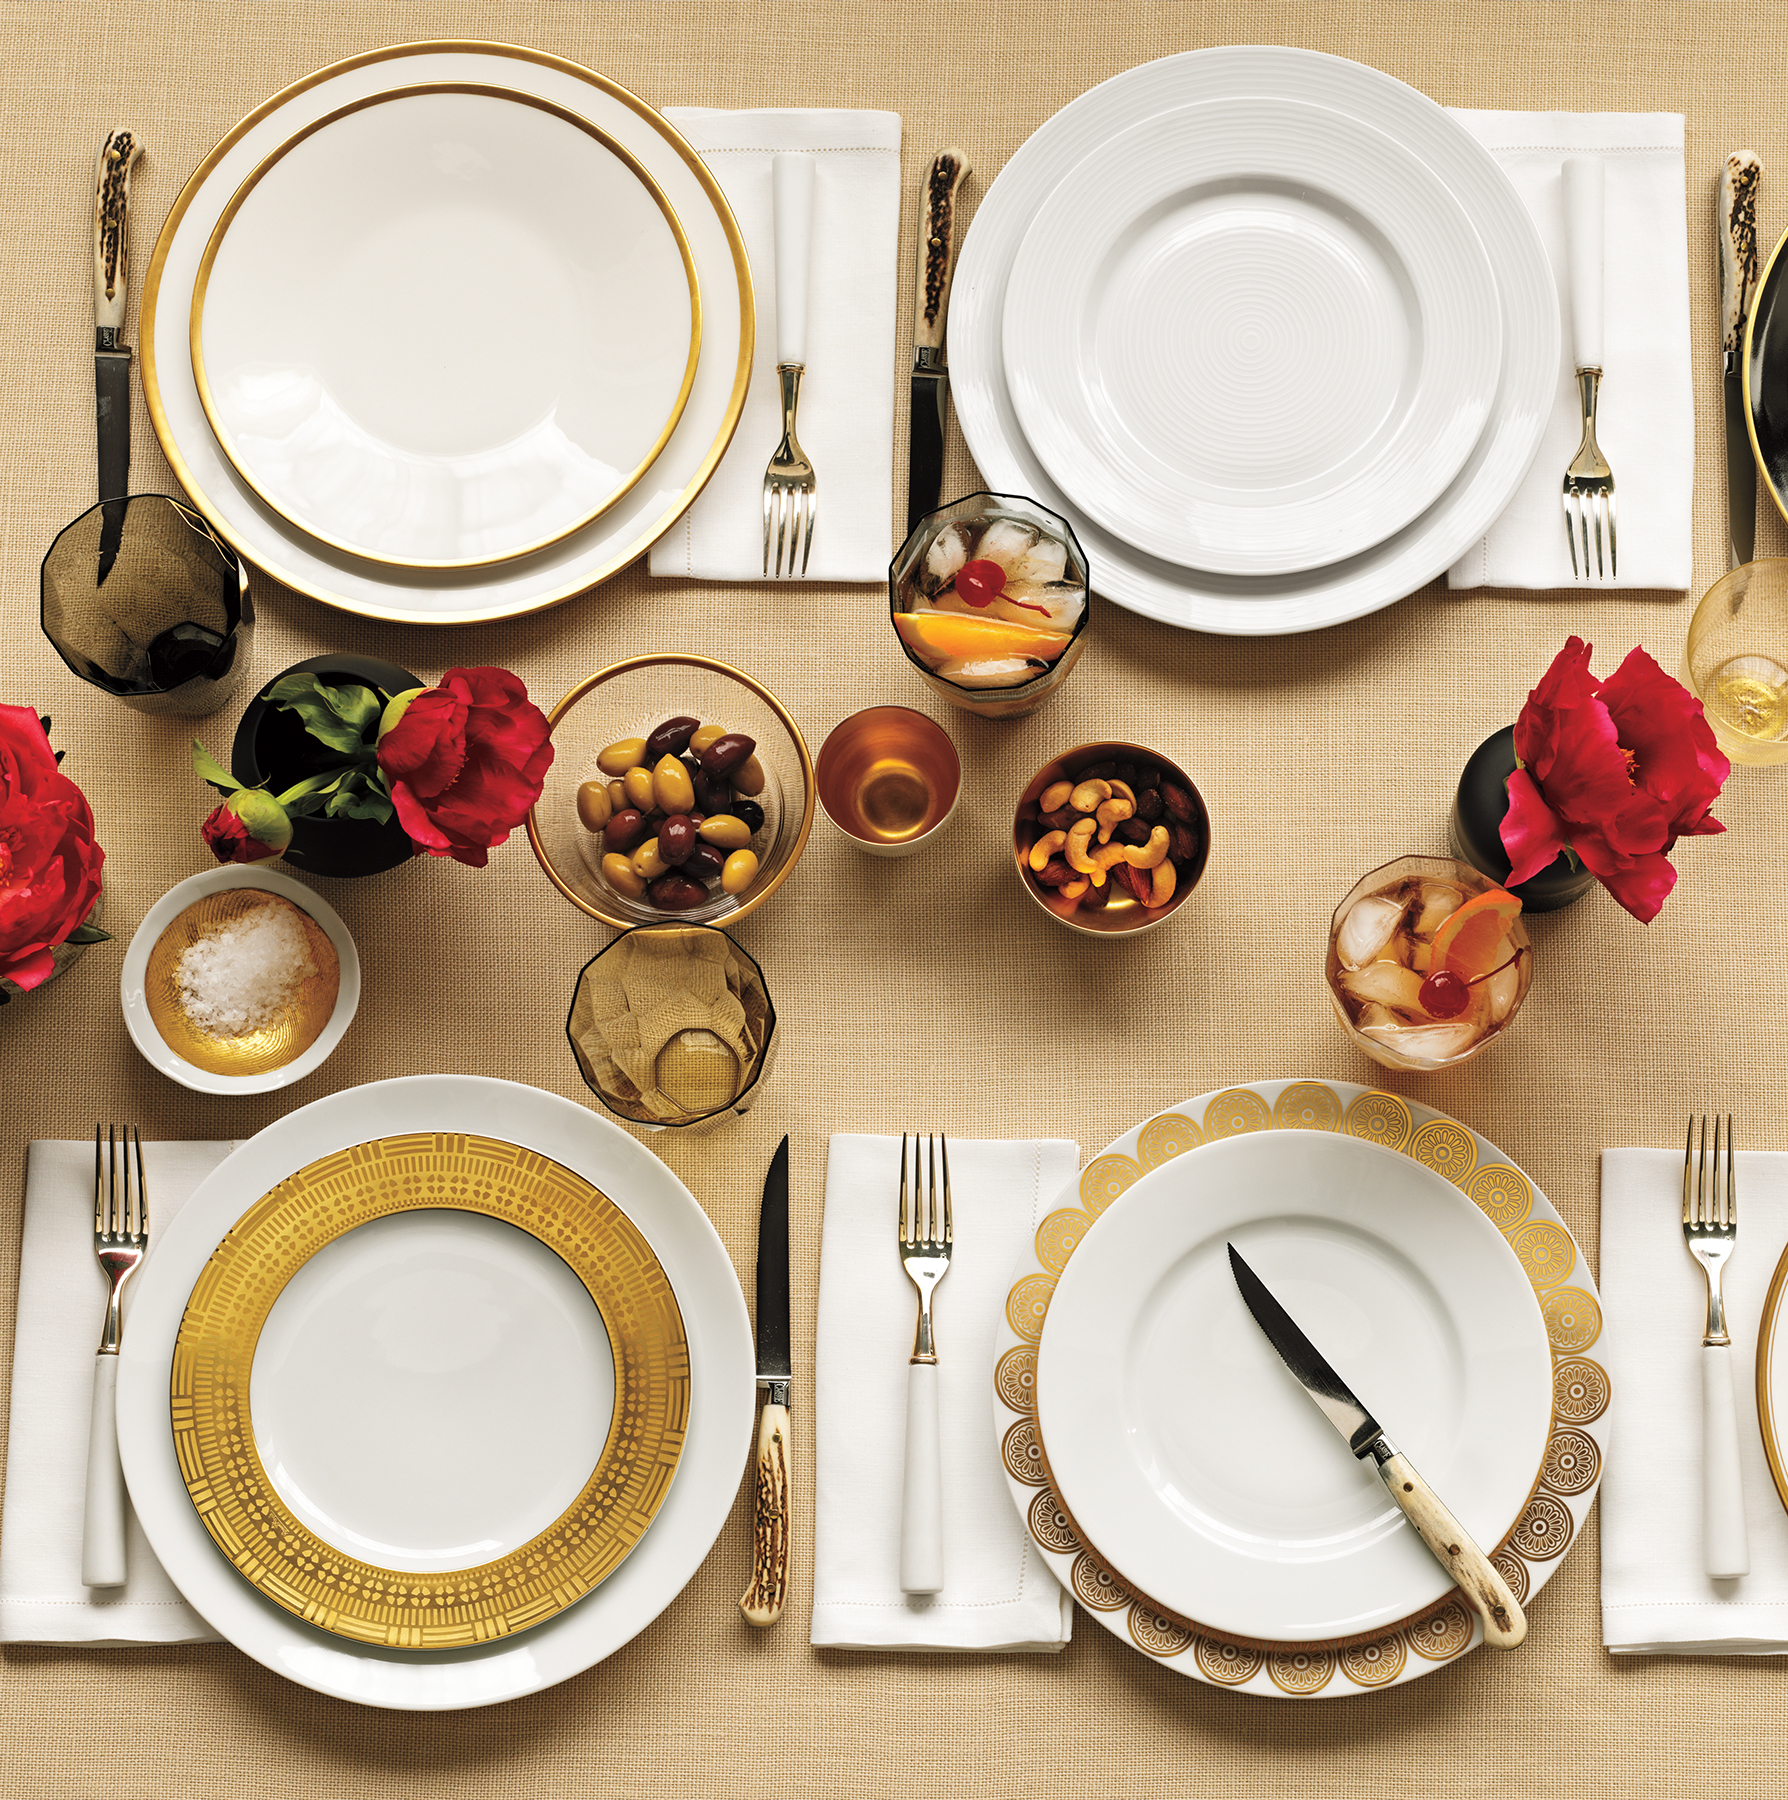 Tabletop at dinner party